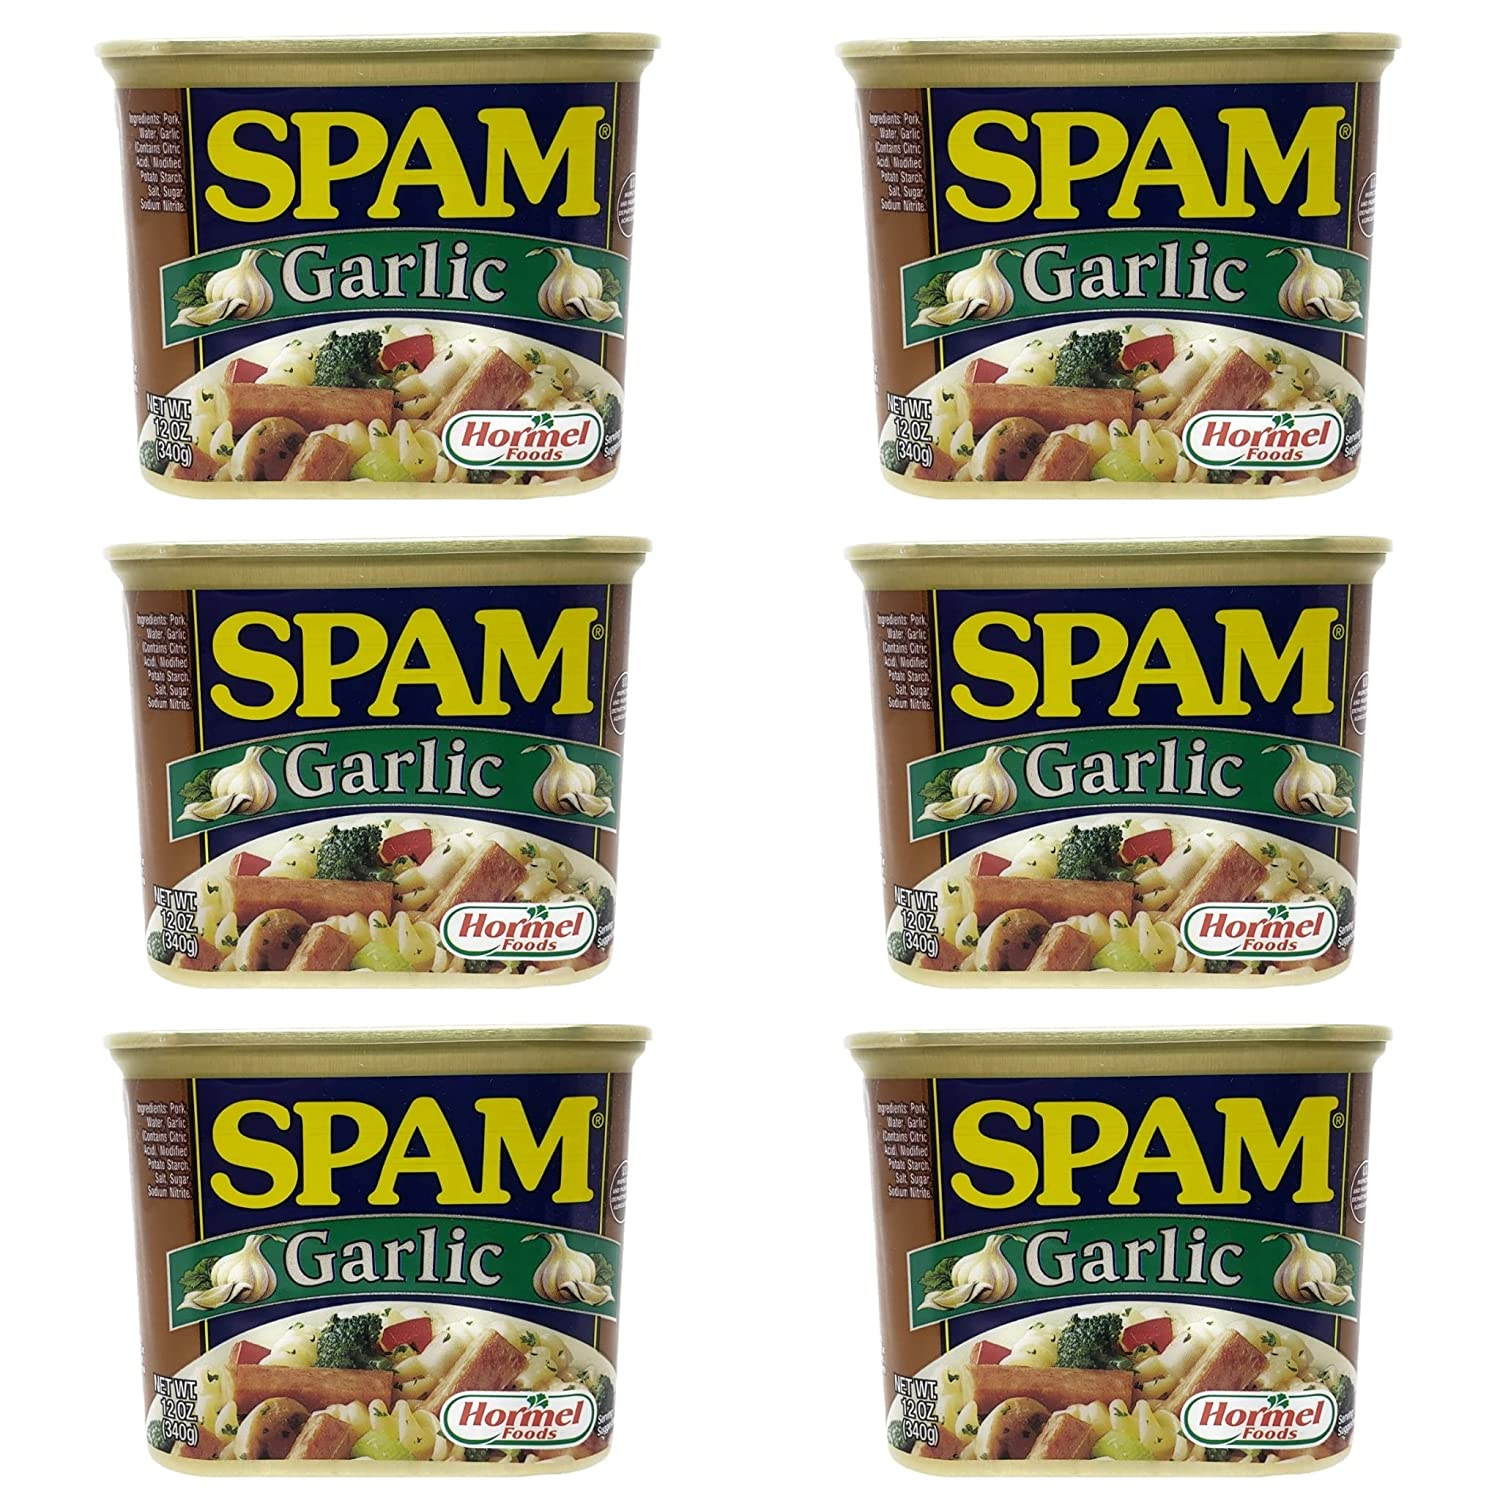 Hormel Foods Garlic Spam - 12 oz Per Can - Fully Cooked Ready to Eat Cold or Hot - Choose a 4 Pack, 6 Pack, or 12 Pack (6 Pack)